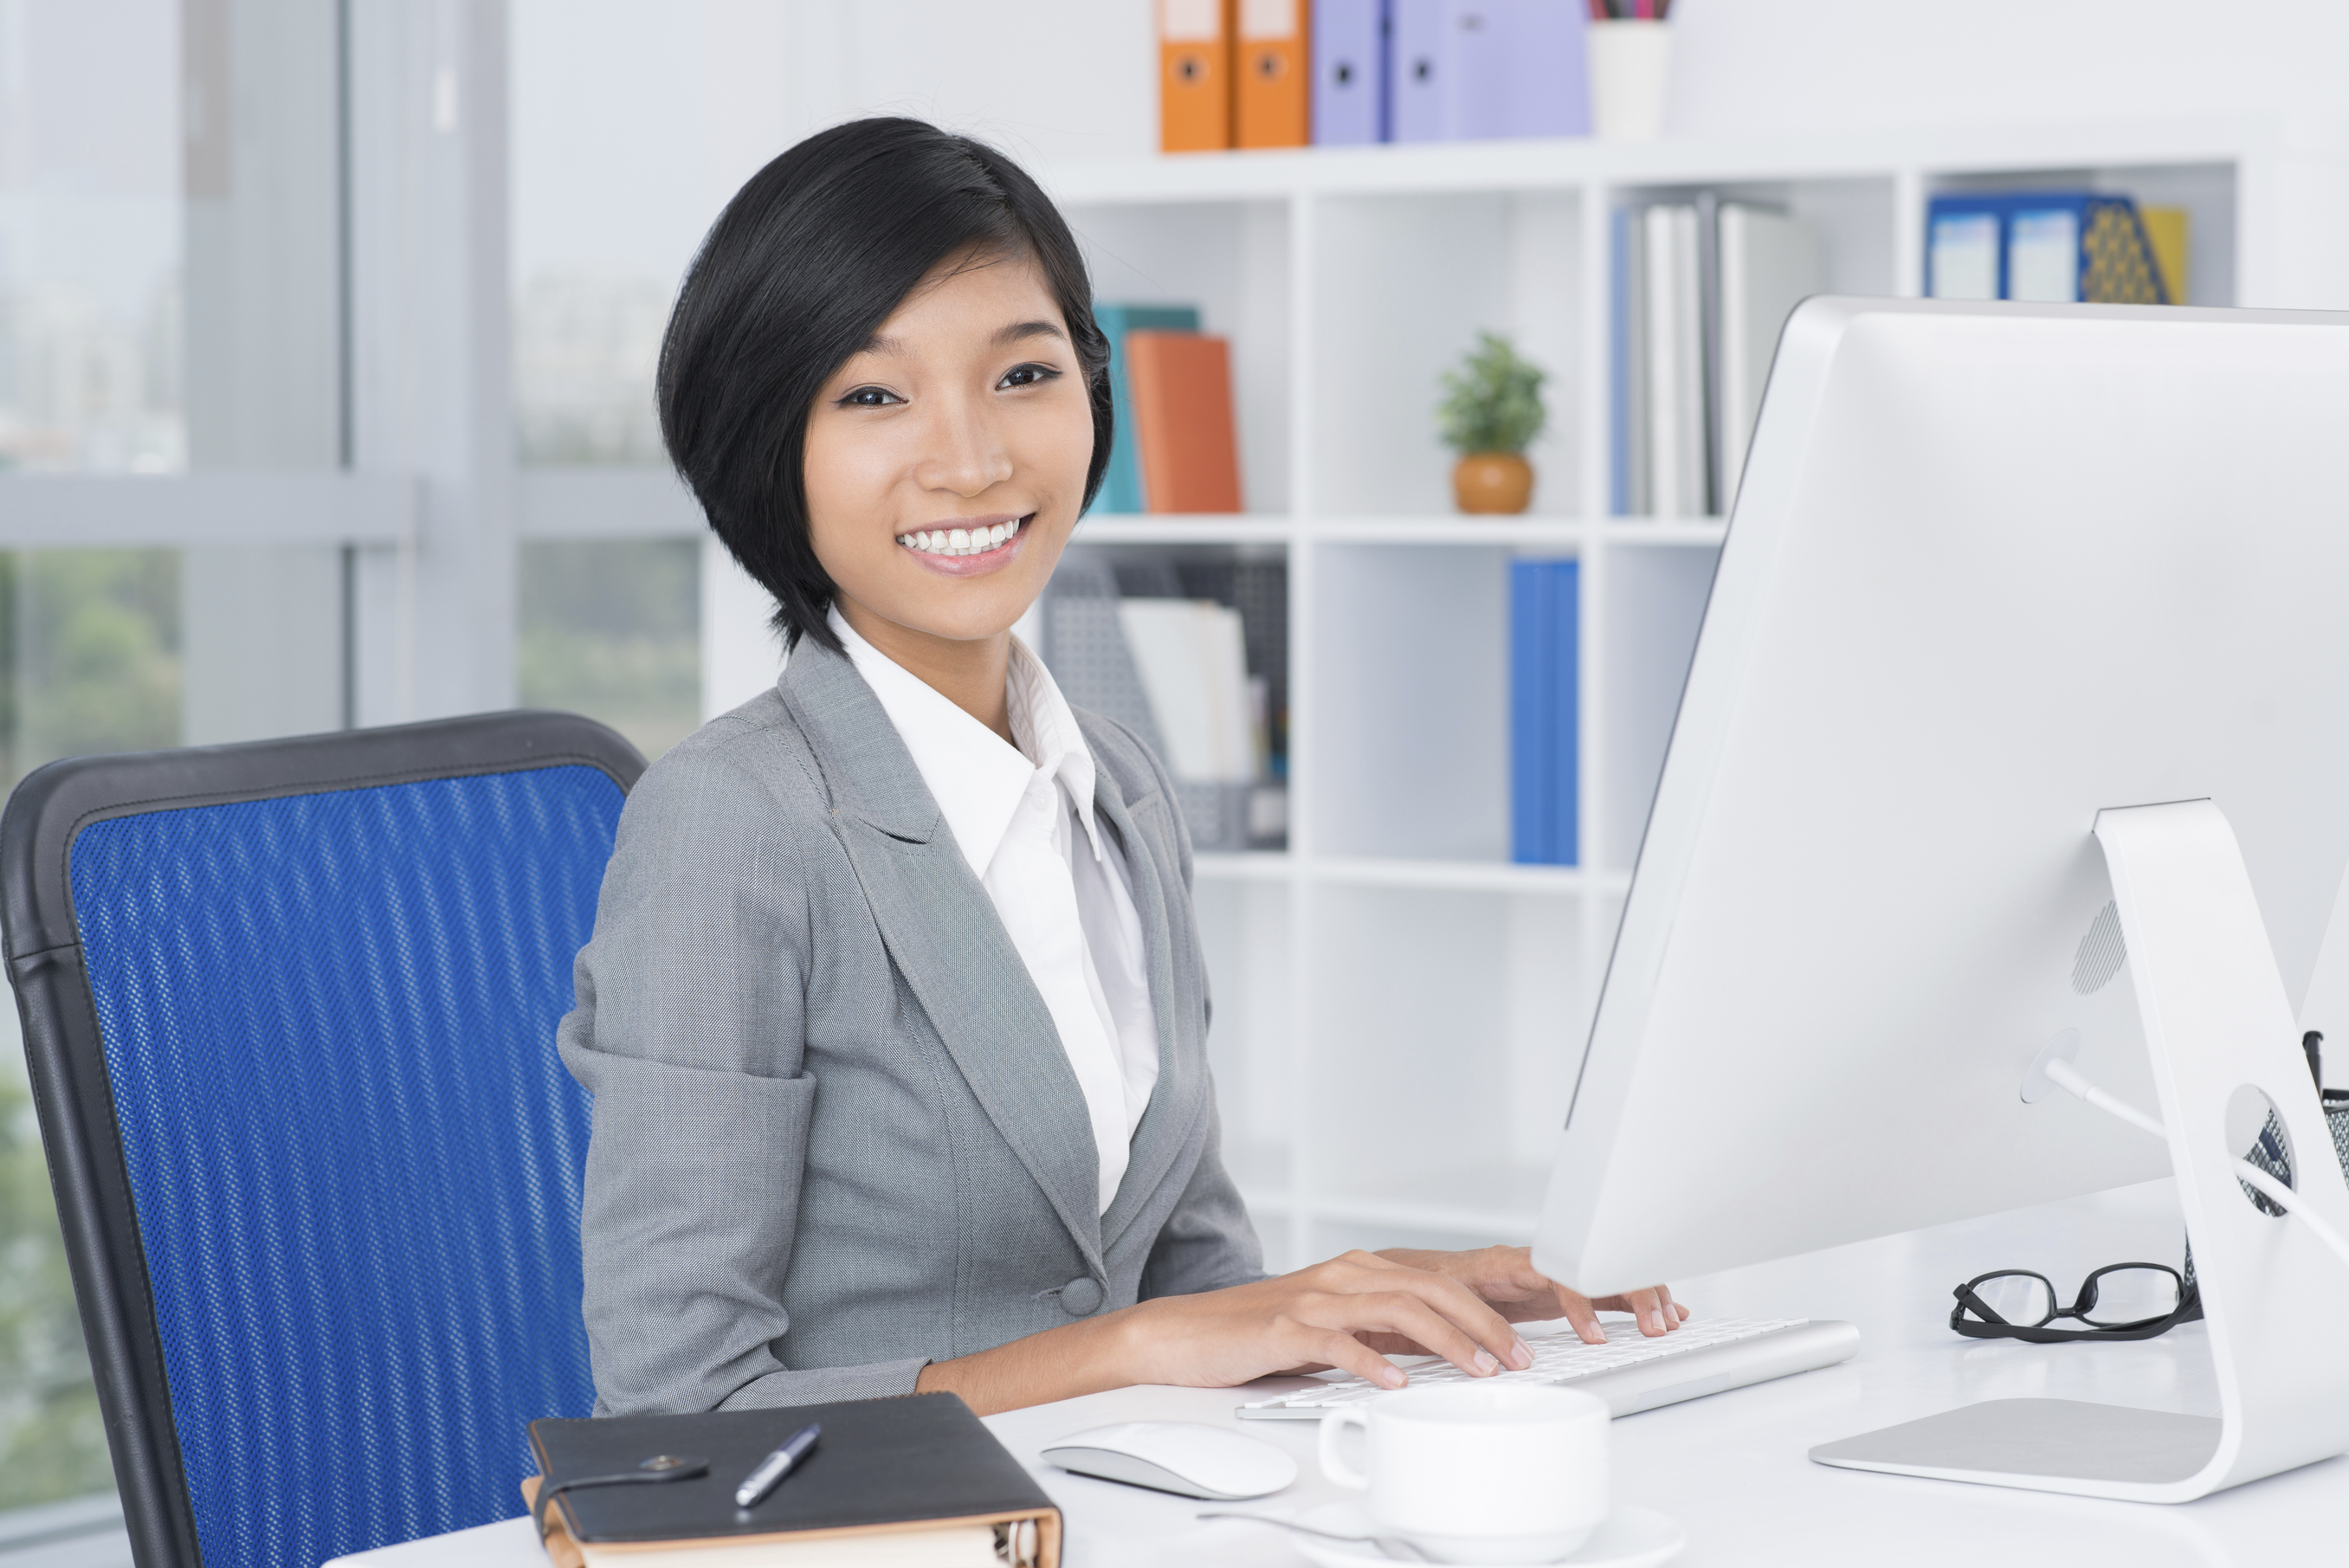 Administrative Assistant Working As An Administrative Assistant An Excellent Choice For